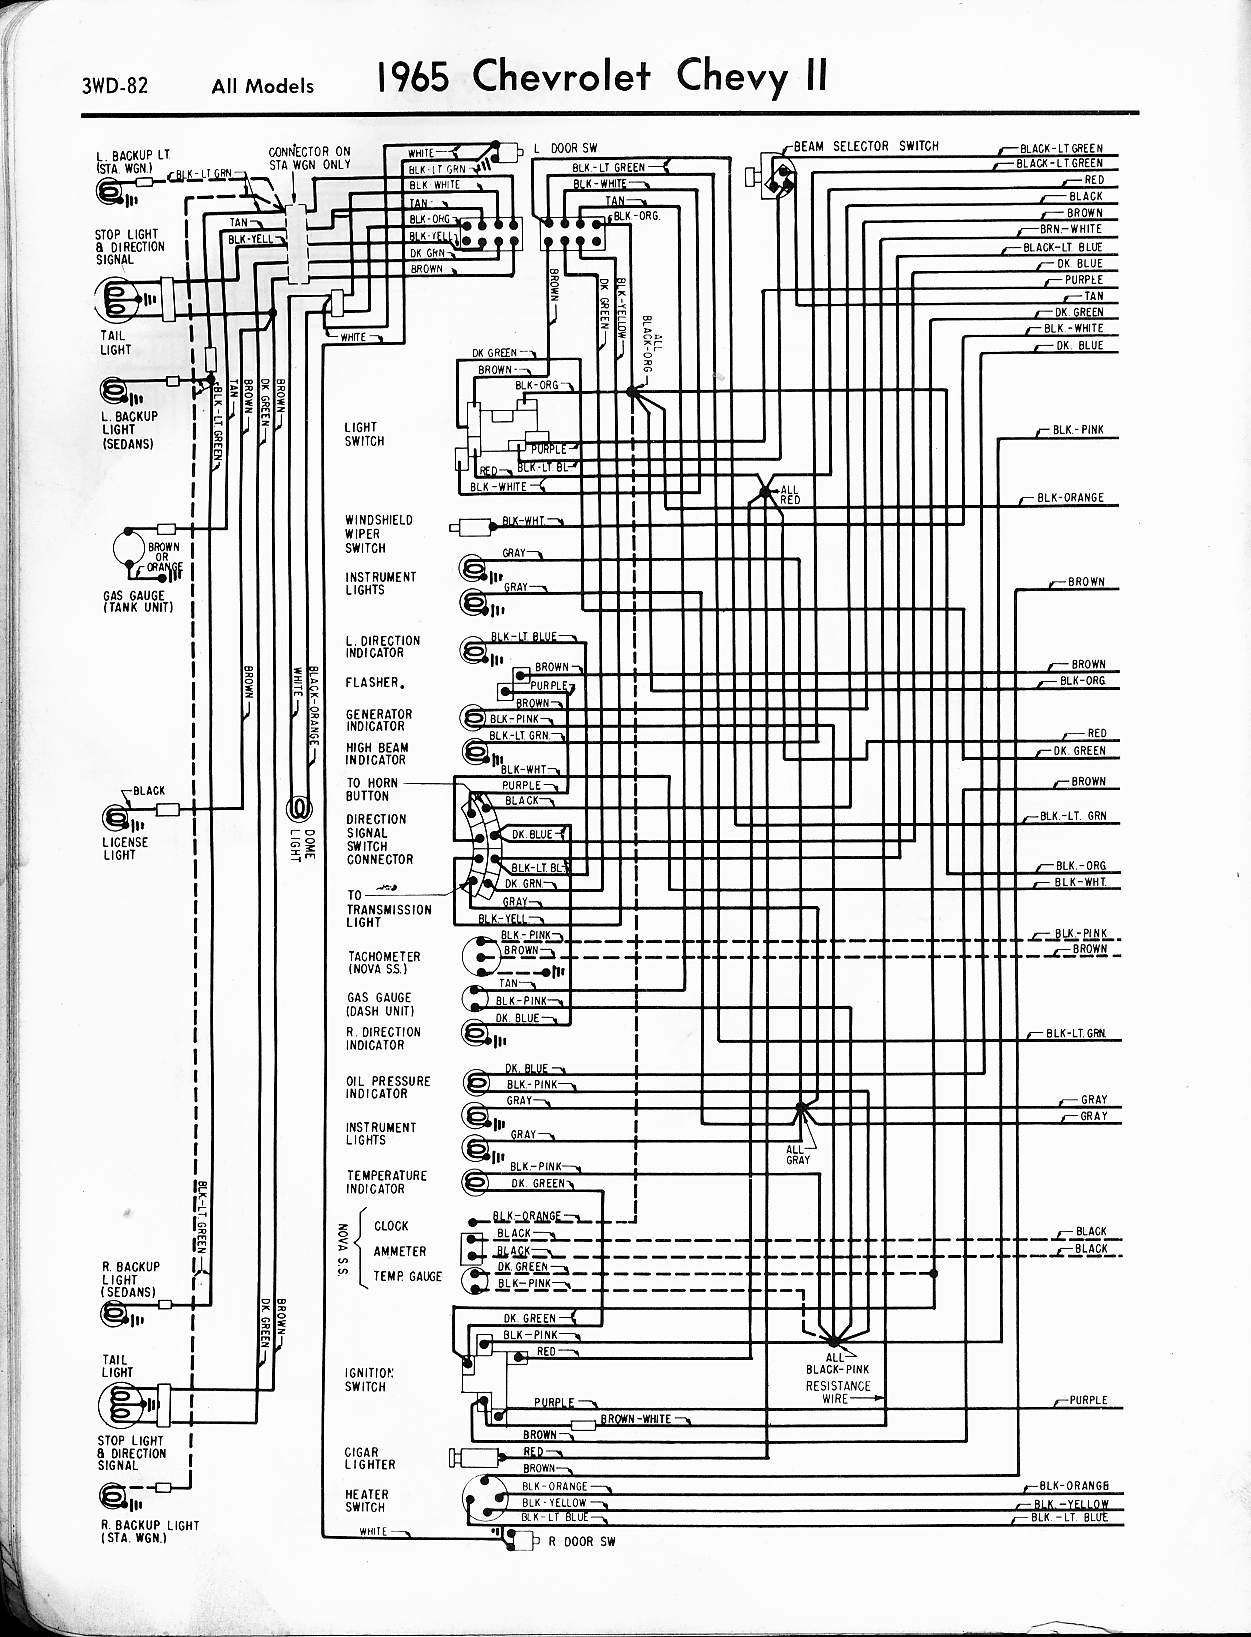 66 Nova Wiring Harness Great Design Of Diagram 6 Cylinder Gm On Chevy 2 33 1970 4